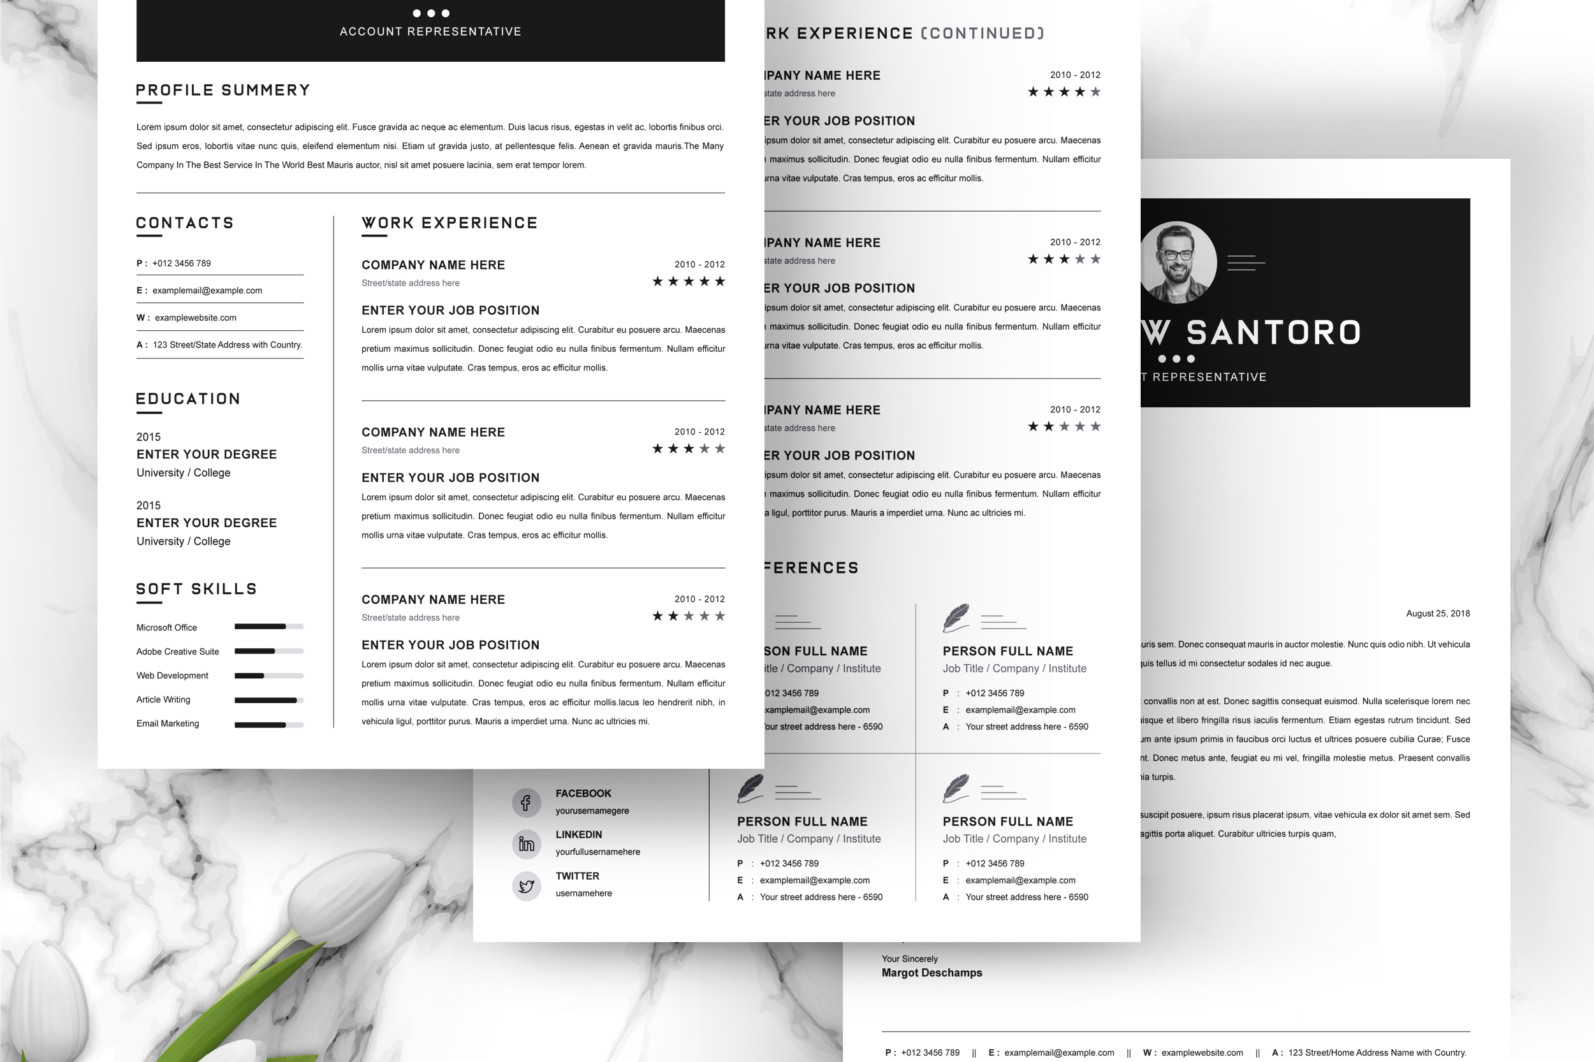 Simple Resume Design 2021 - 04 3 Pages Free Resume Design Template -